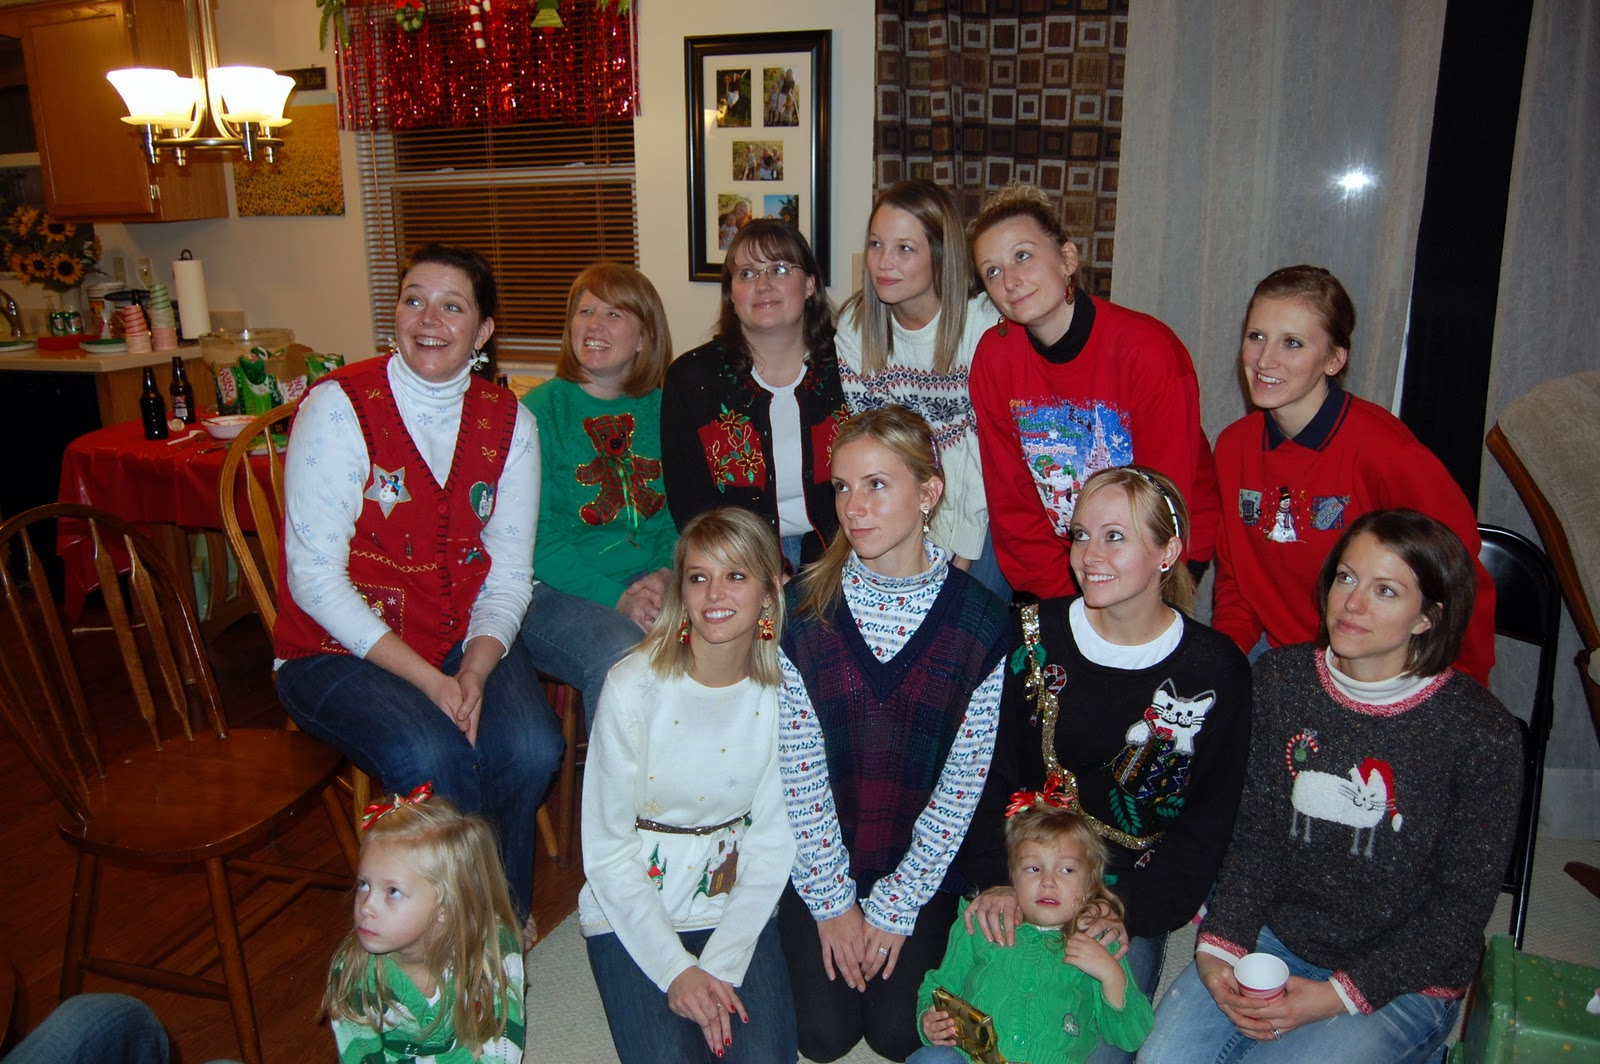 Ugly Sweater Ideas For Christmas Parties Part - 49: {Ugly Christmas Sweater Party} Ideas